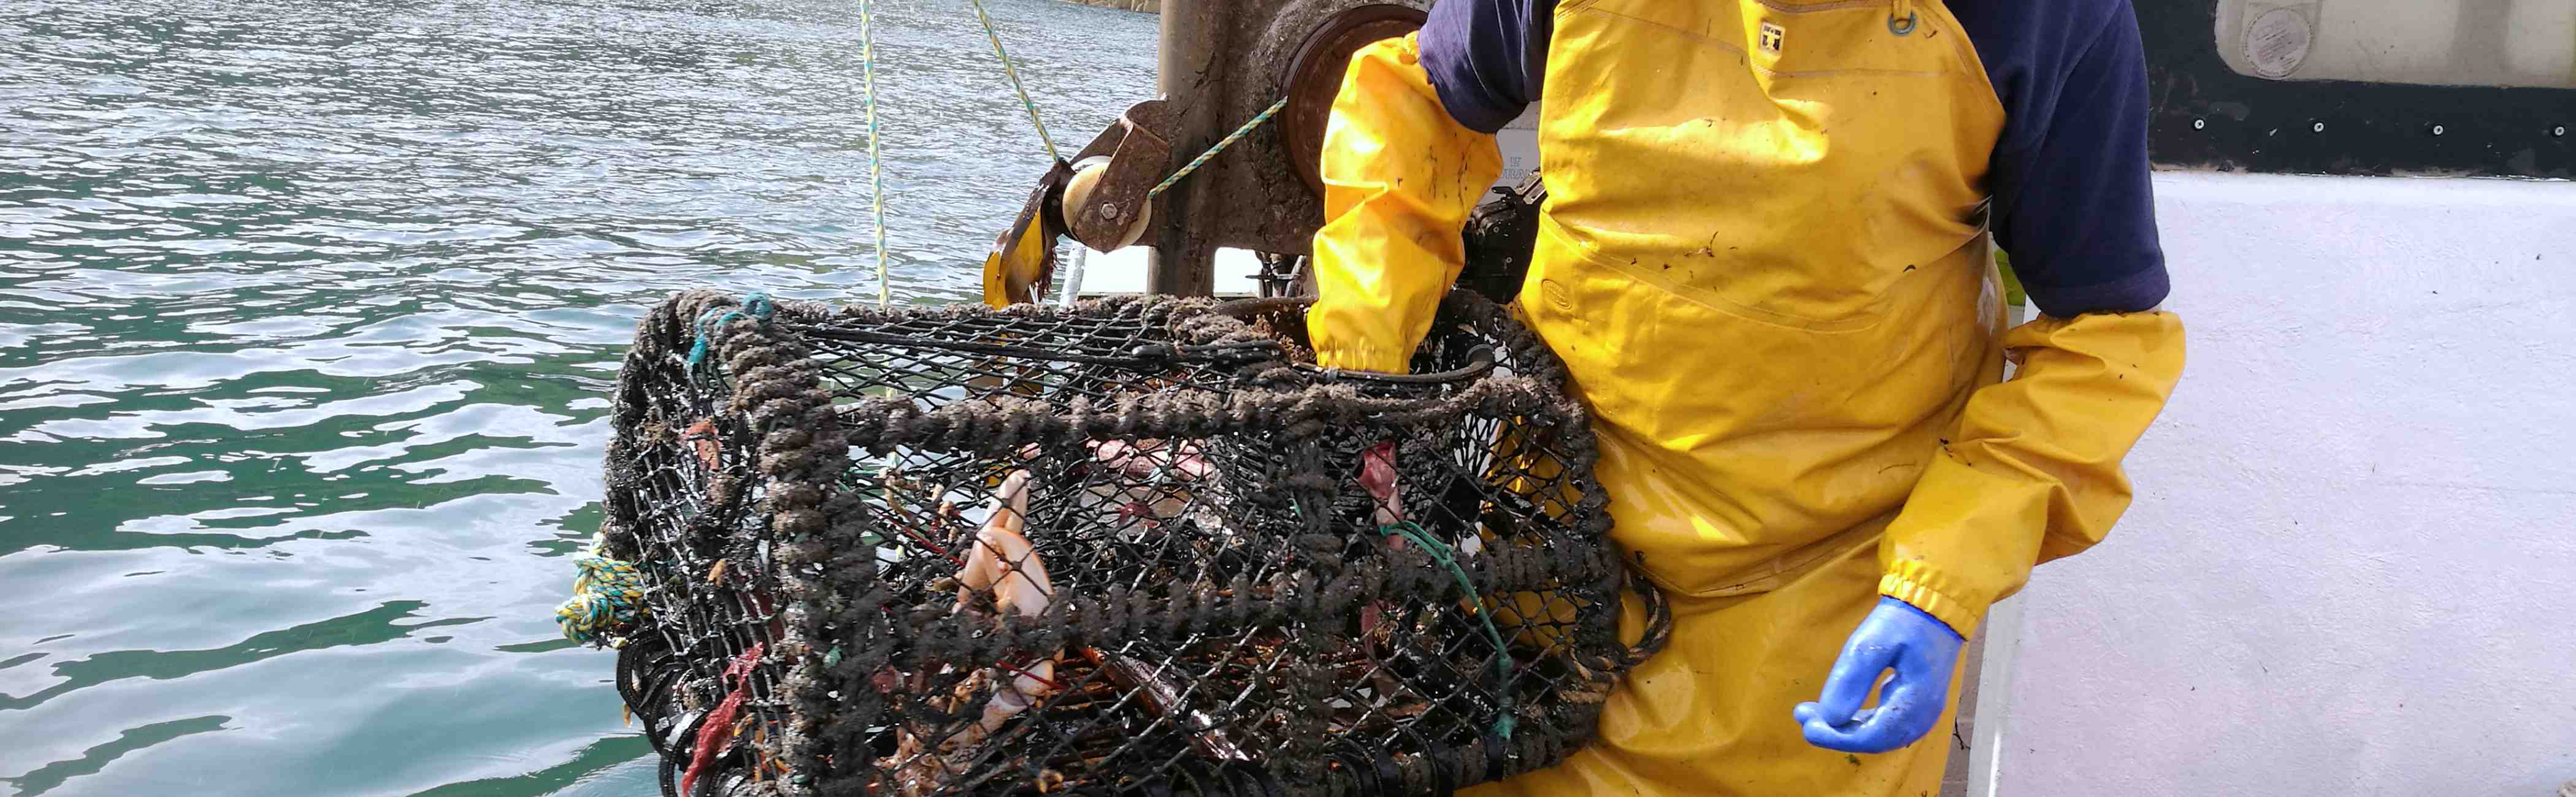 Fresh shellfish being caught on a boat.